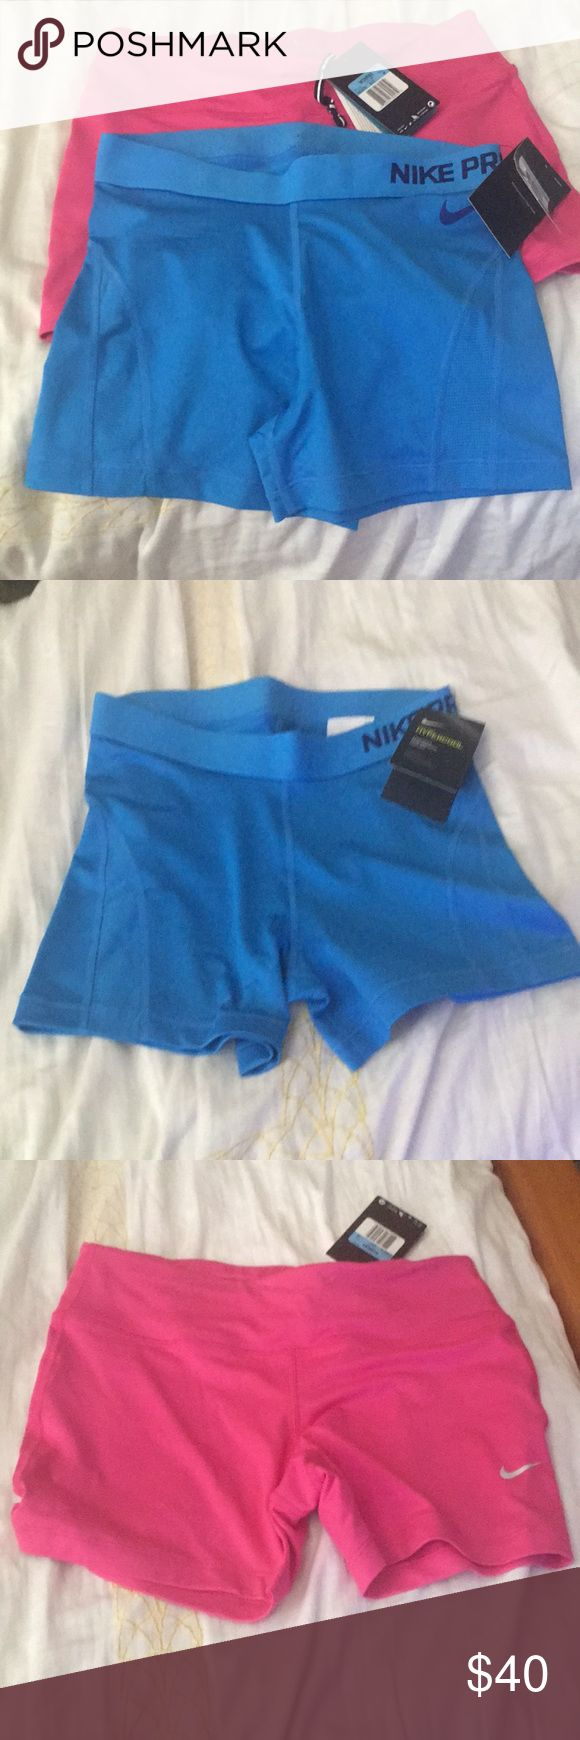 Nike Compression shorts New with tags Nike compression shorts. Great for training or running. Blue is a Nike Pro  Hypercool and Pink is a Dri fit shorts. Nike Shorts